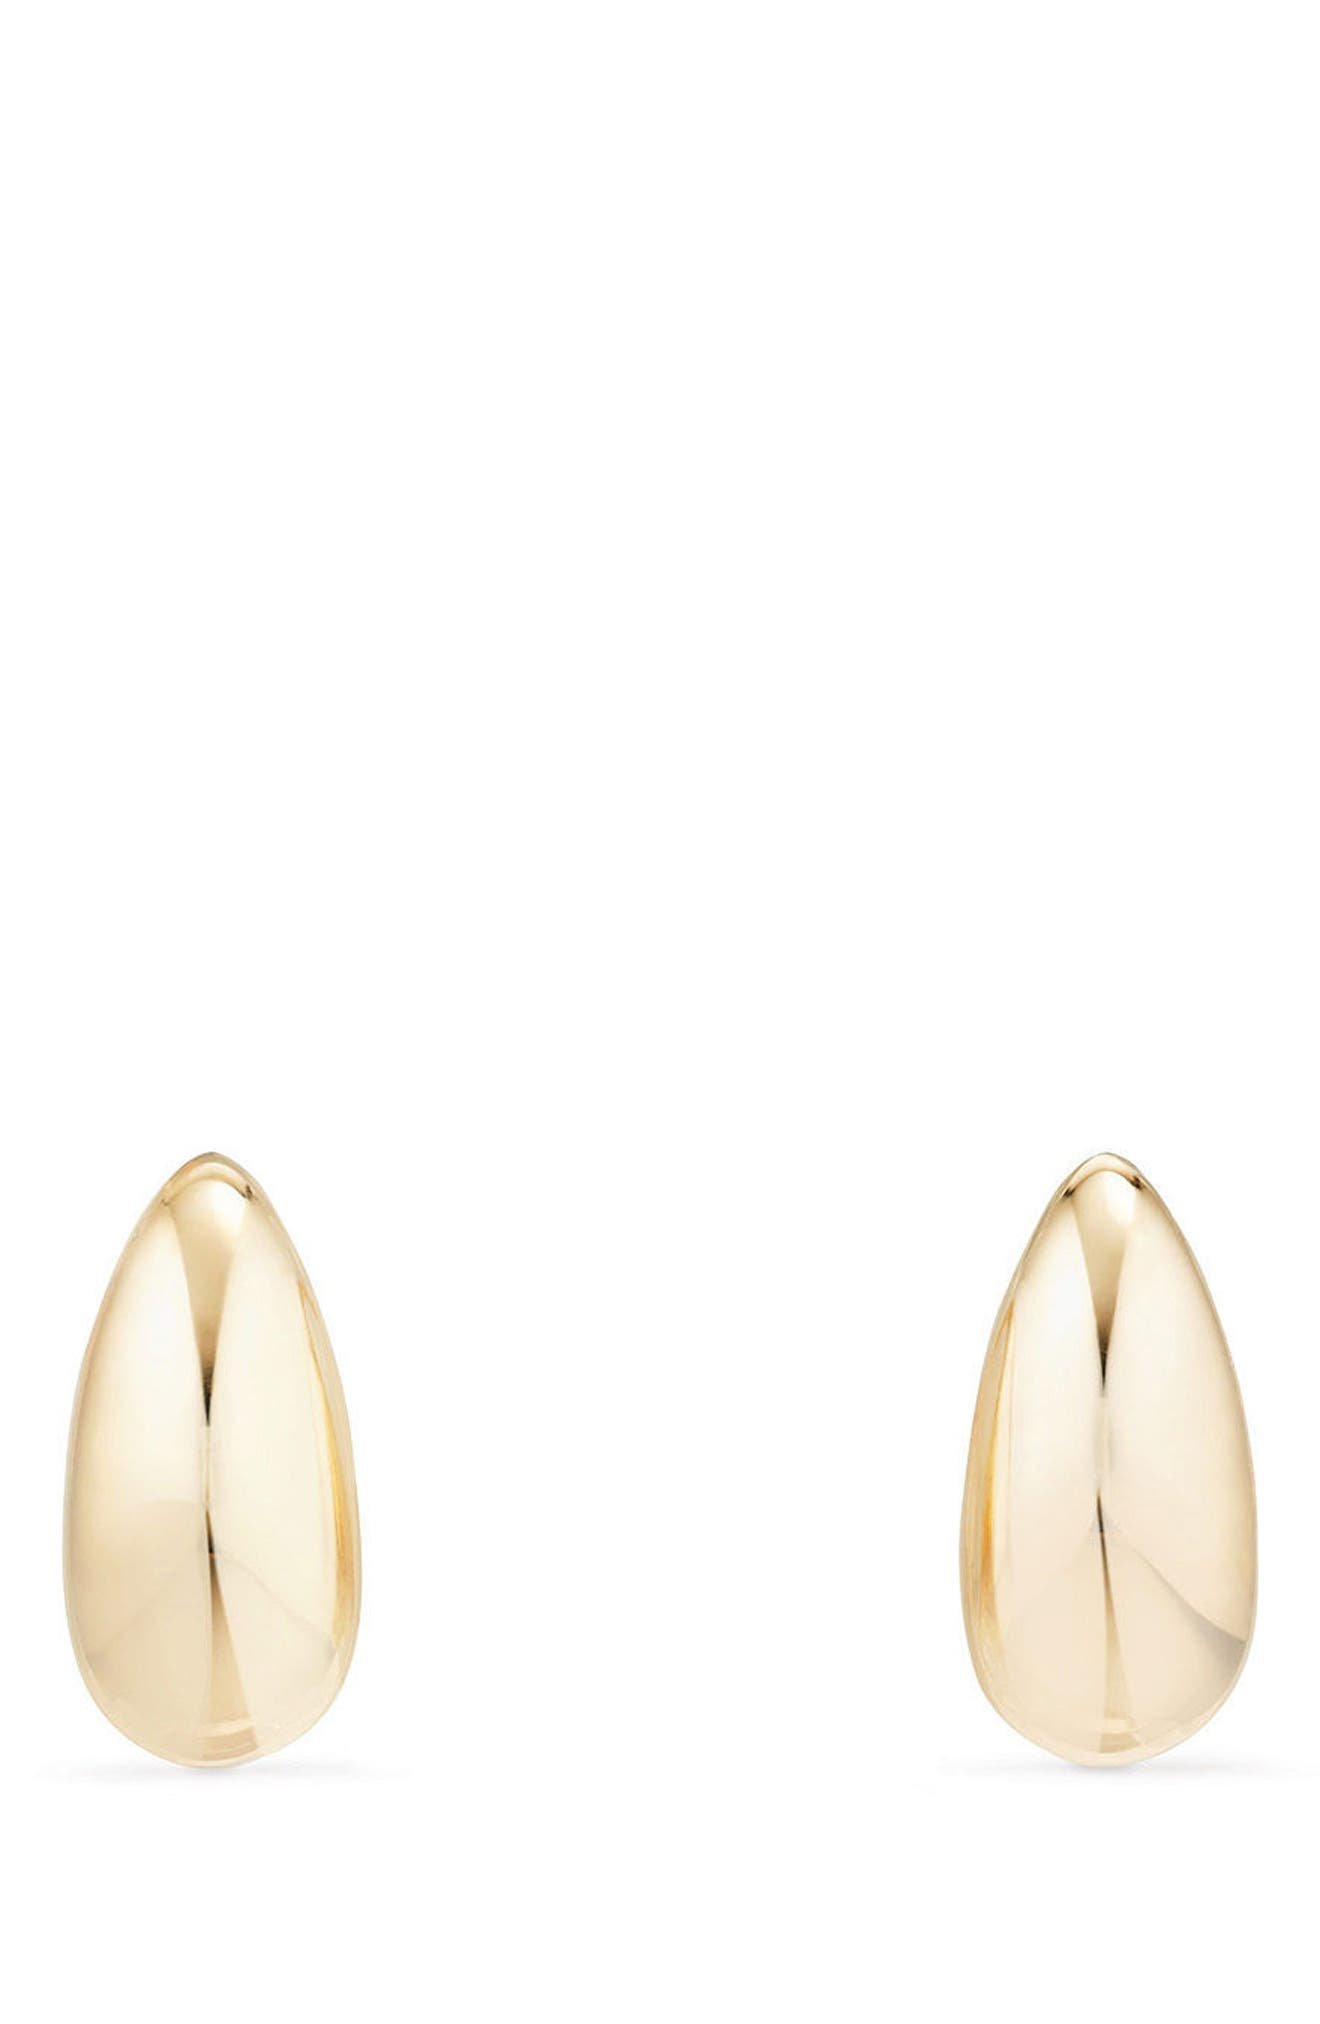 Pure Form Pod Earrings with Diamonds in 18K Gold, 15mm,                             Main thumbnail 1, color,                             YELLOW GOLD